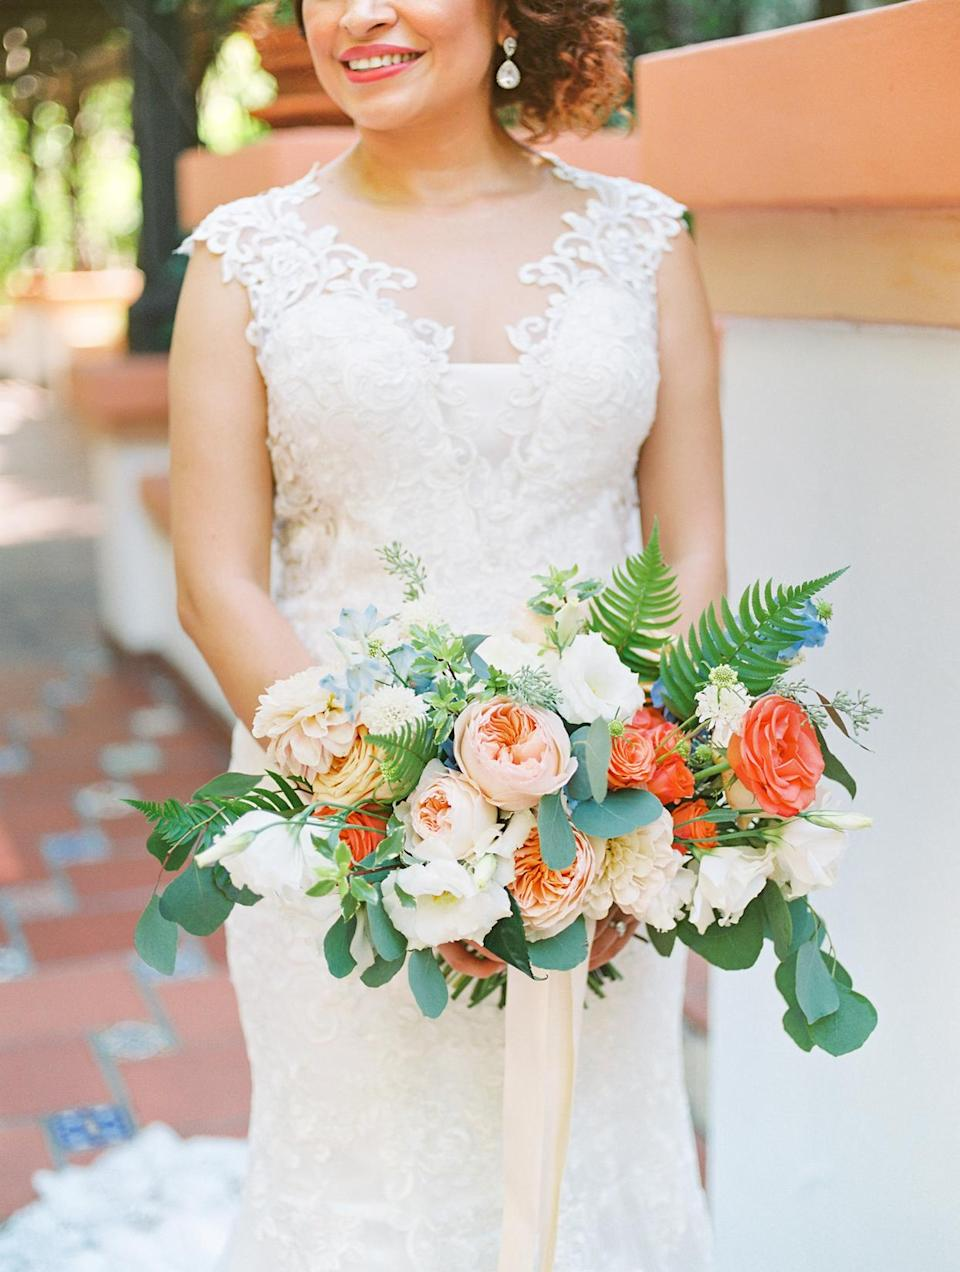 <p>Ana's oblong garden-style bouquet was filled with a myriad of rose types, dahlias, peonies, scabiosa, delphinium, and larkspur in various shades of white, ivory, peach, orange, and coral—with pops of light blue and plenty of greenery. A silk ivory ribbon held the arrangement together.</p>